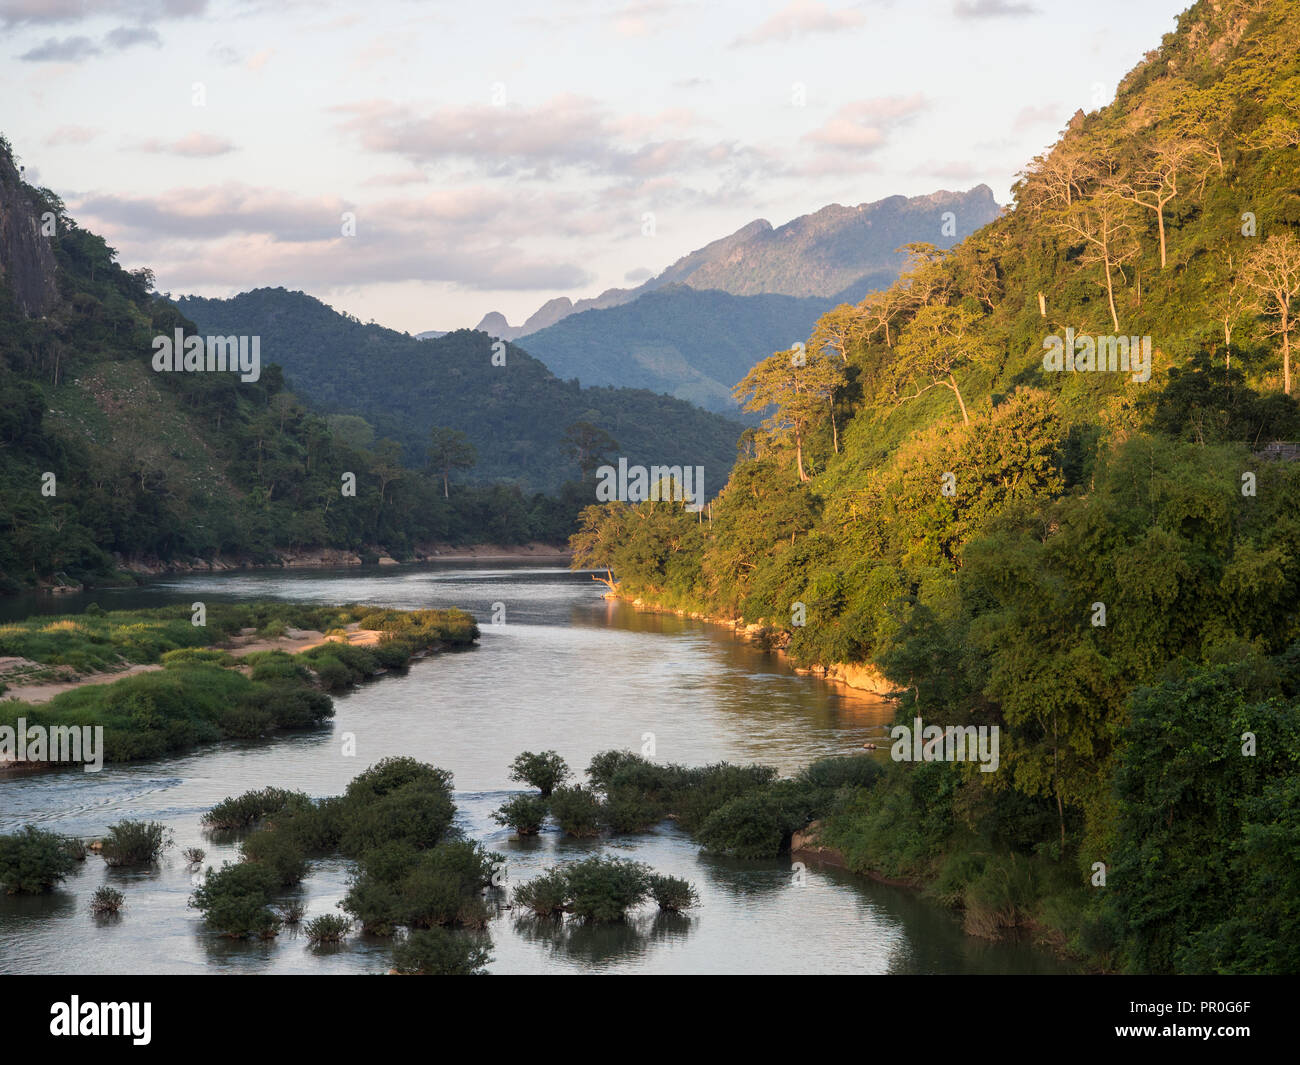 View of mountains and the Nam Ou River, Nong Khiaw, Laos, Indochina, Southeast Asia, Asia Stock Photo